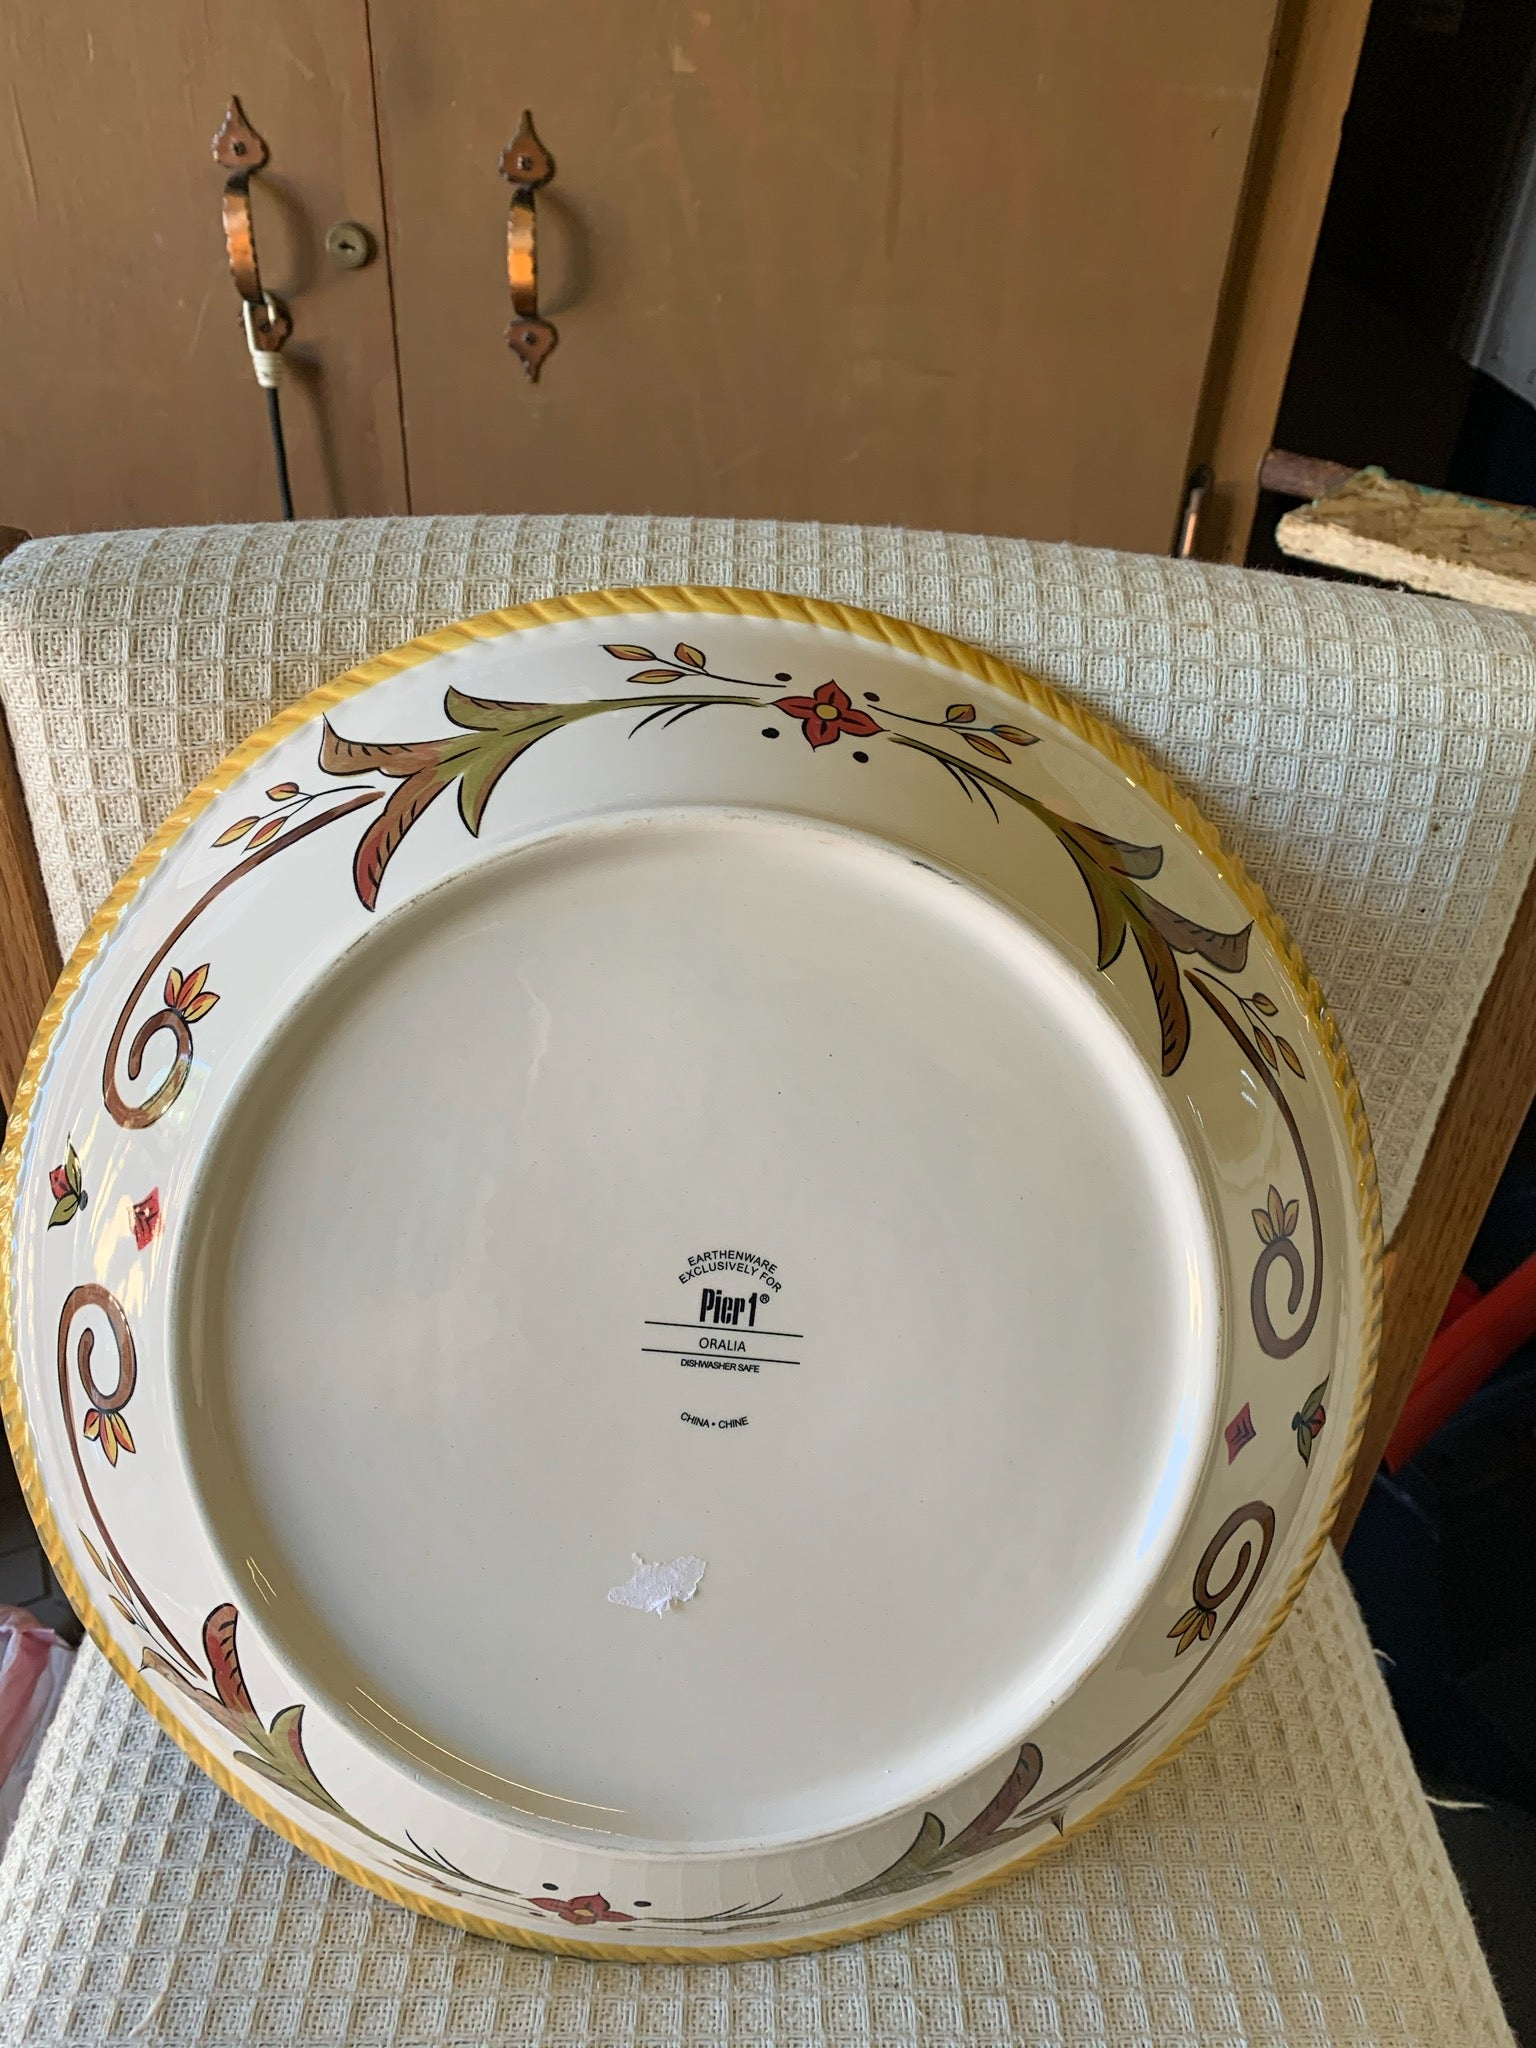 Oralia Pasta Bowl from Pier 1 - Macomb County ReStores